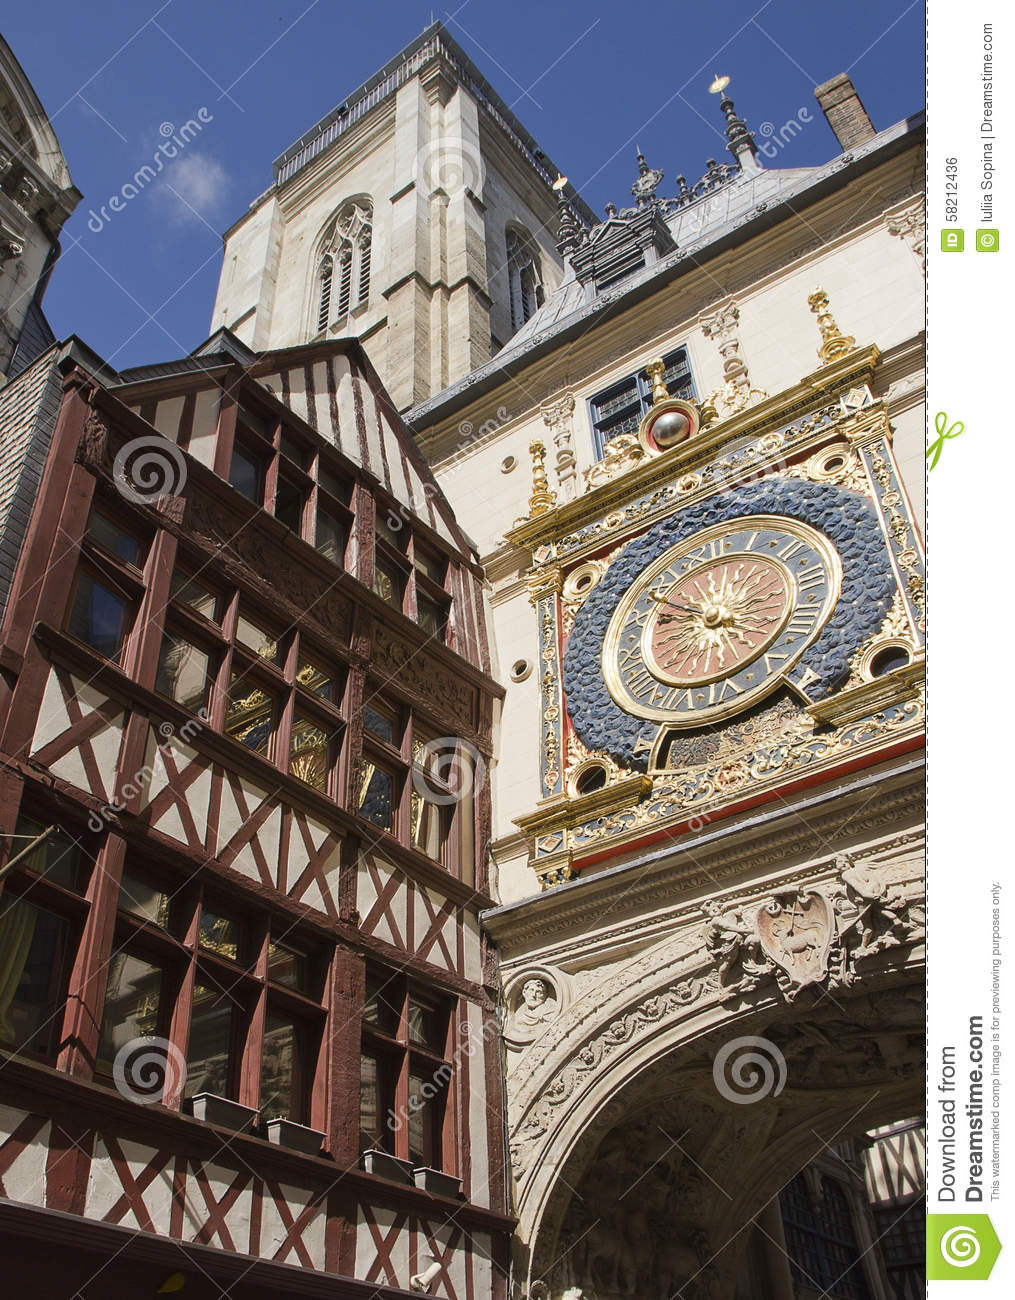 Paysage de ville en normandie photo stock image 58212436 for Paysage de ville